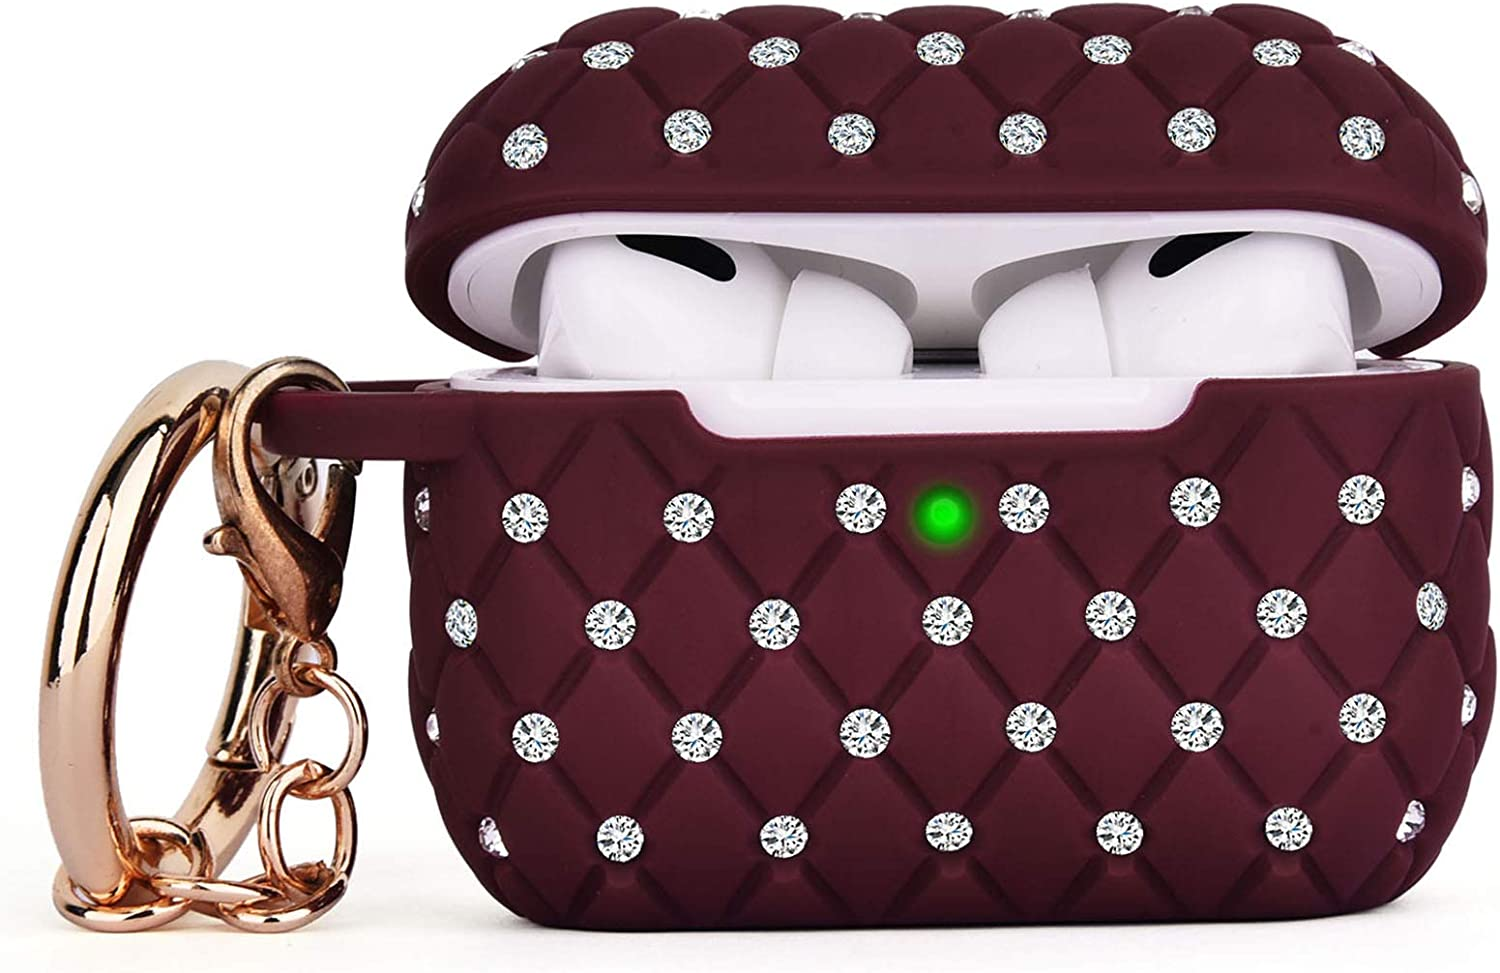 CAGOS Compatible with Airpods Pro Case, Cute Accessories Bling TPU Case Full Protective Hard Carrying Cover Women Girls with Shiny Crystal/Keychain for Apple Airpods 3 Charging Case (Burgundy)